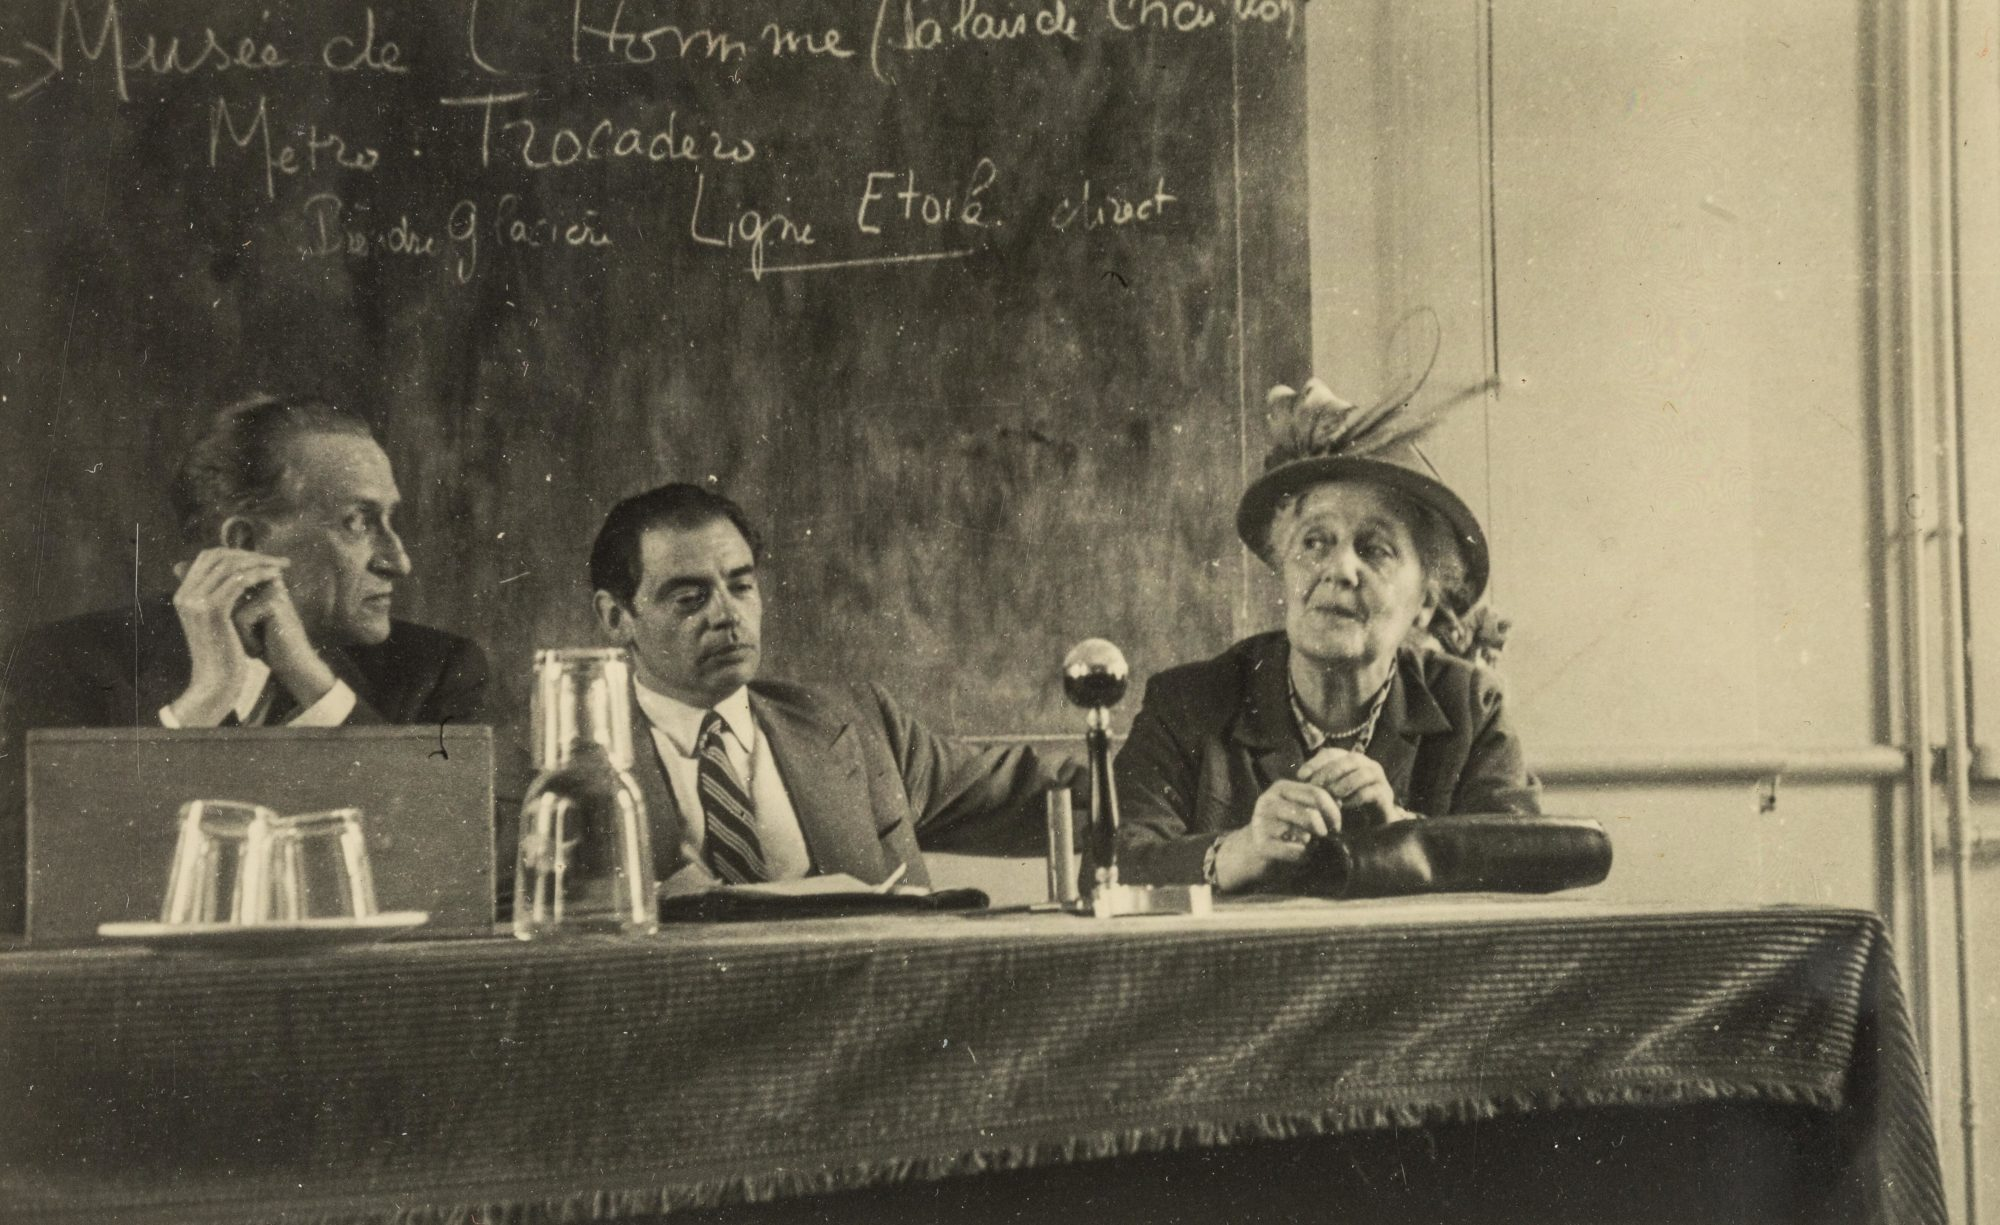 Photograph of Melanie Klein Melanie Klein at the French Congress in 1950